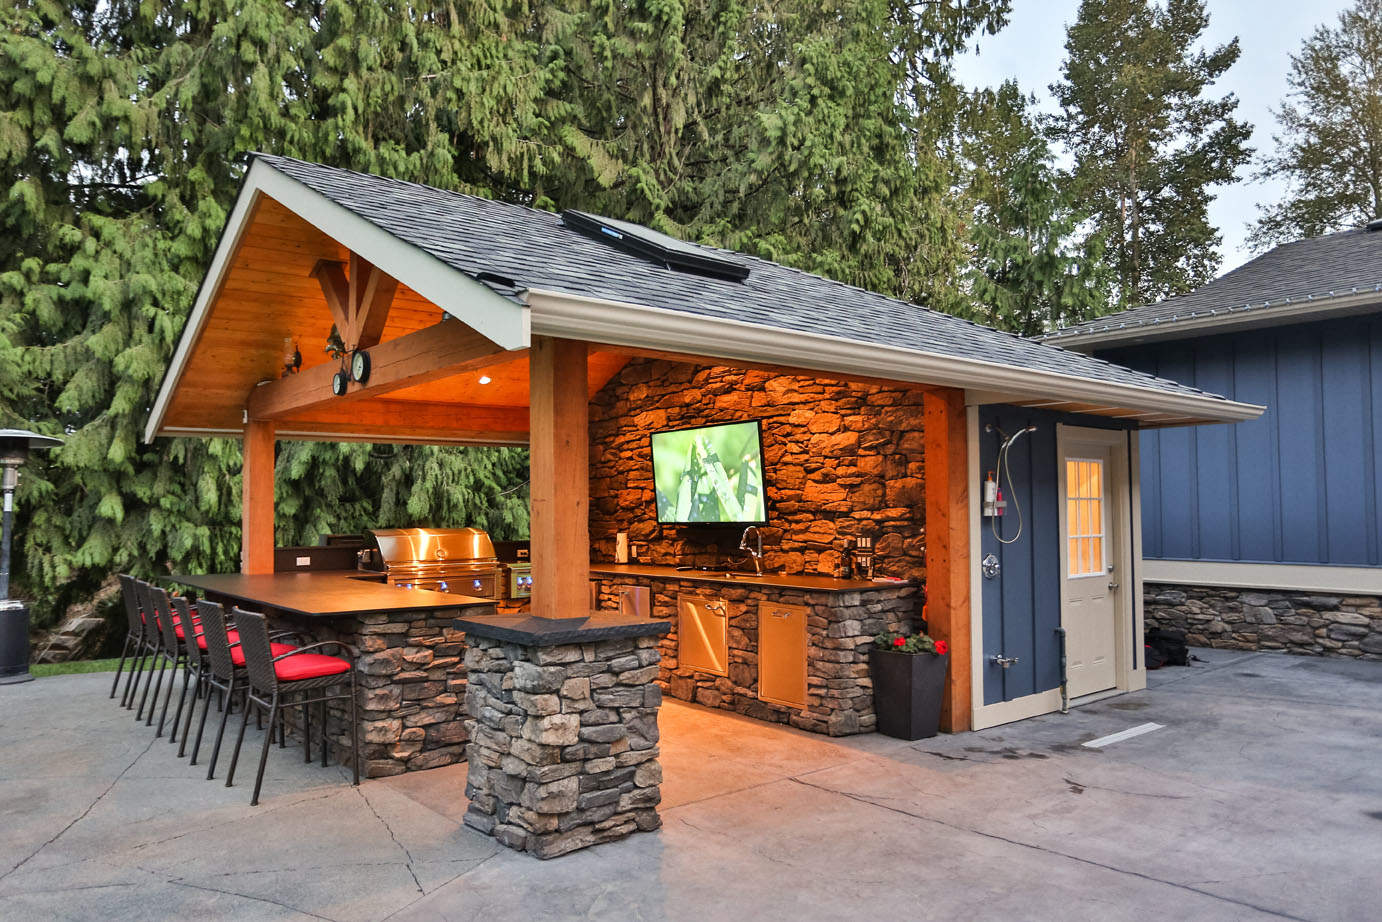 Outdoor Kitchen Design & Installation-Rowlett TX Professional Landscapers & Outdoor Living Designs-We offer Landscape Design, Outdoor Patios & Pergolas, Outdoor Living Spaces, Stonescapes, Residential & Commercial Landscaping, Irrigation Installation & Repairs, Drainage Systems, Landscape Lighting, Outdoor Living Spaces, Tree Service, Lawn Service, and more.